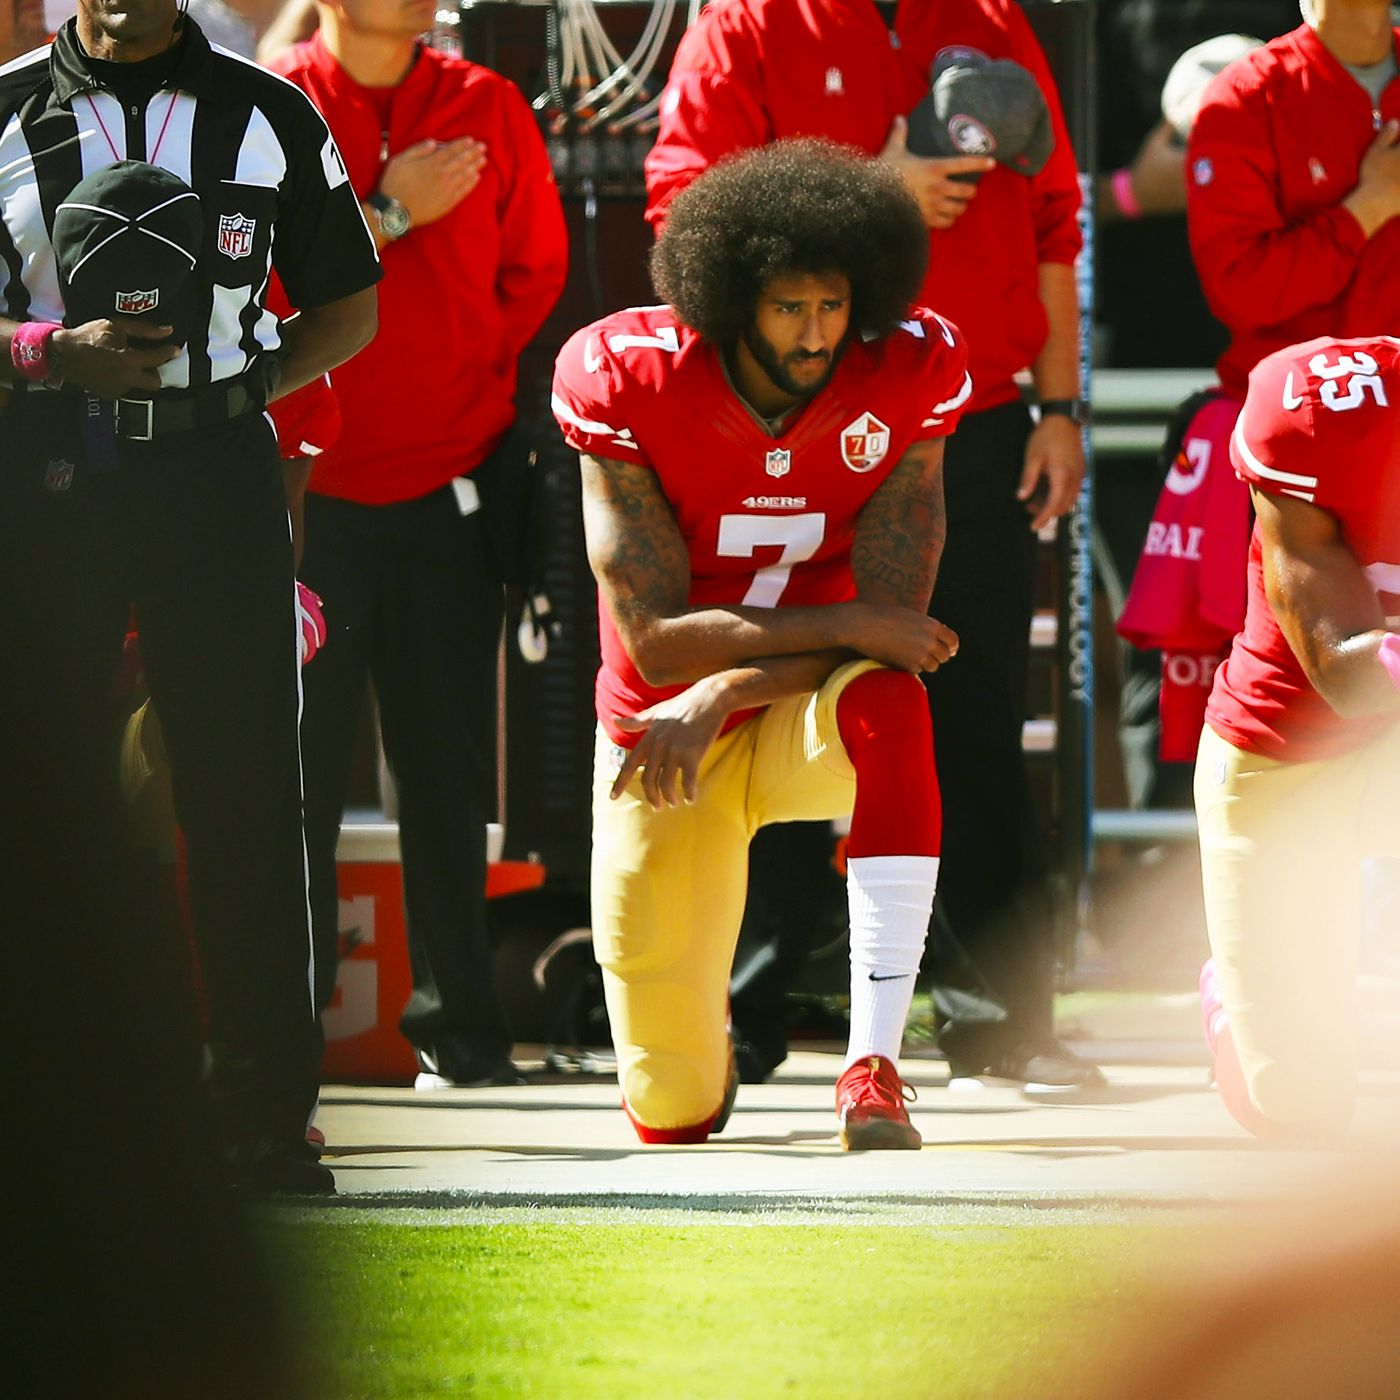 NFL protests: 2 years of NFL protests, explained - Vox